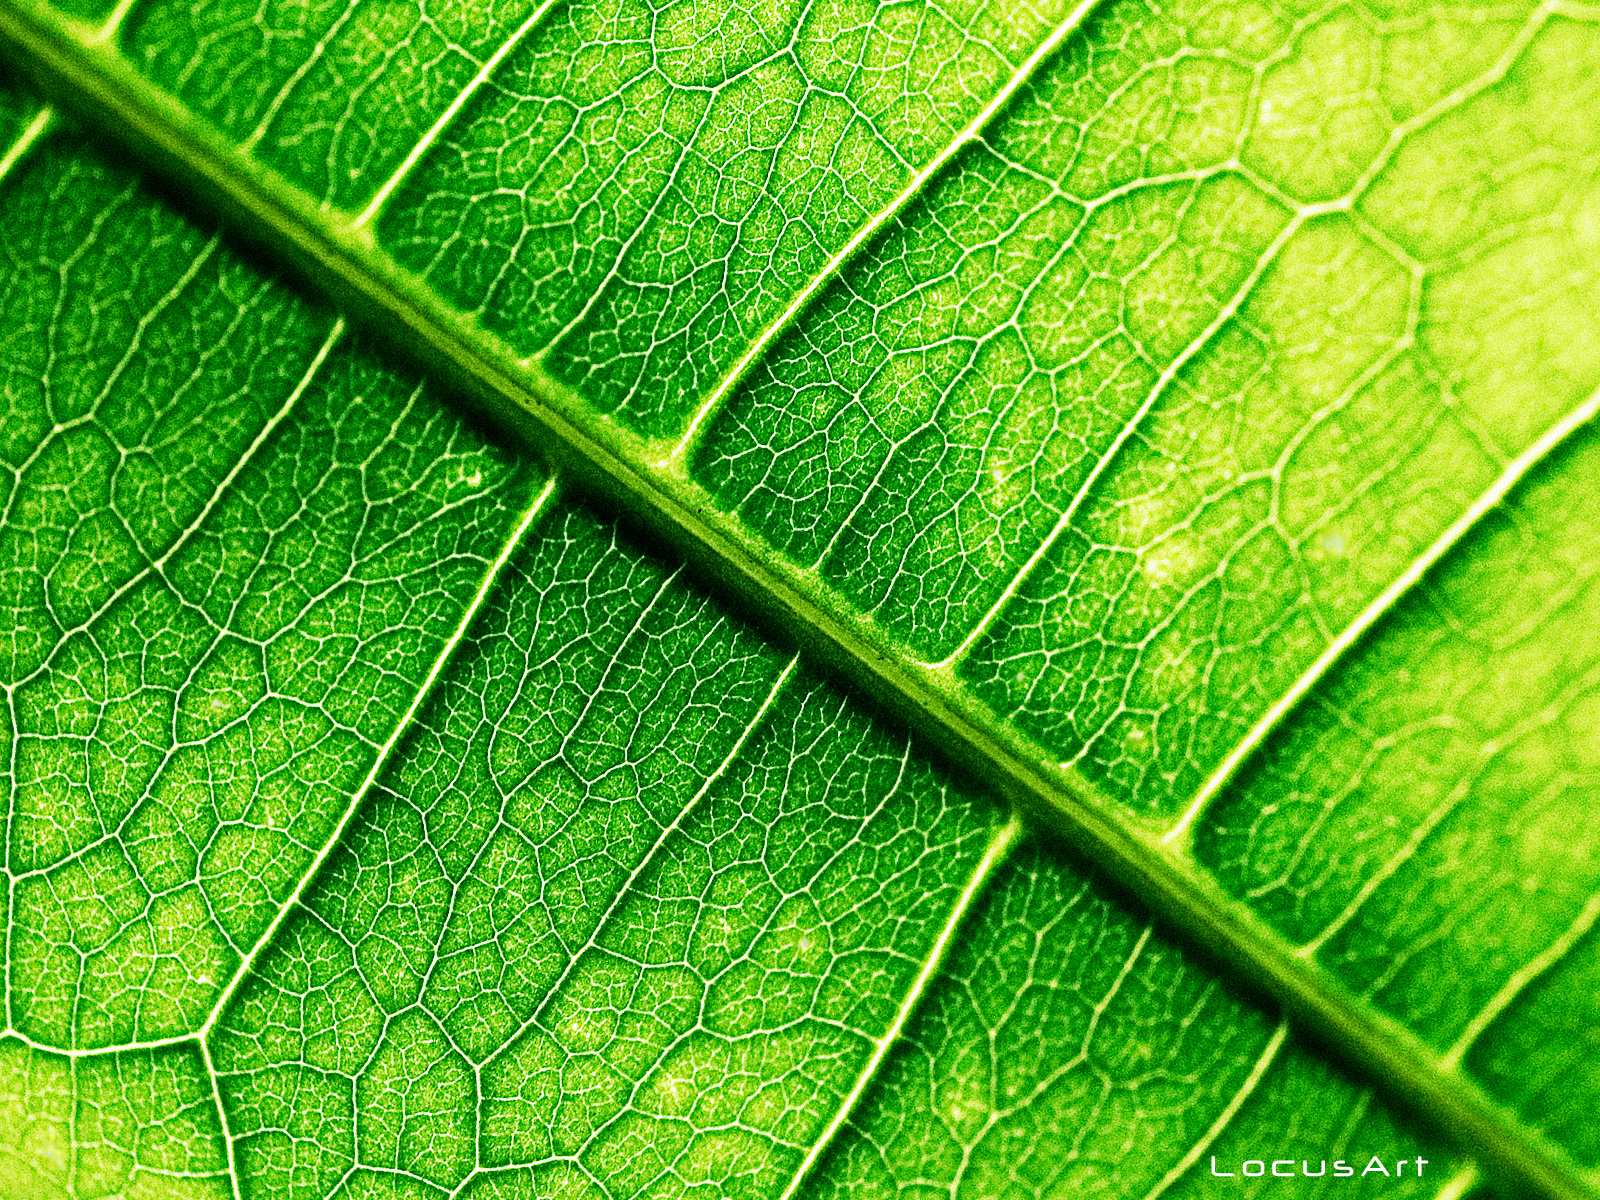 LocusArt Photography Wallpaper - Macro Leaf